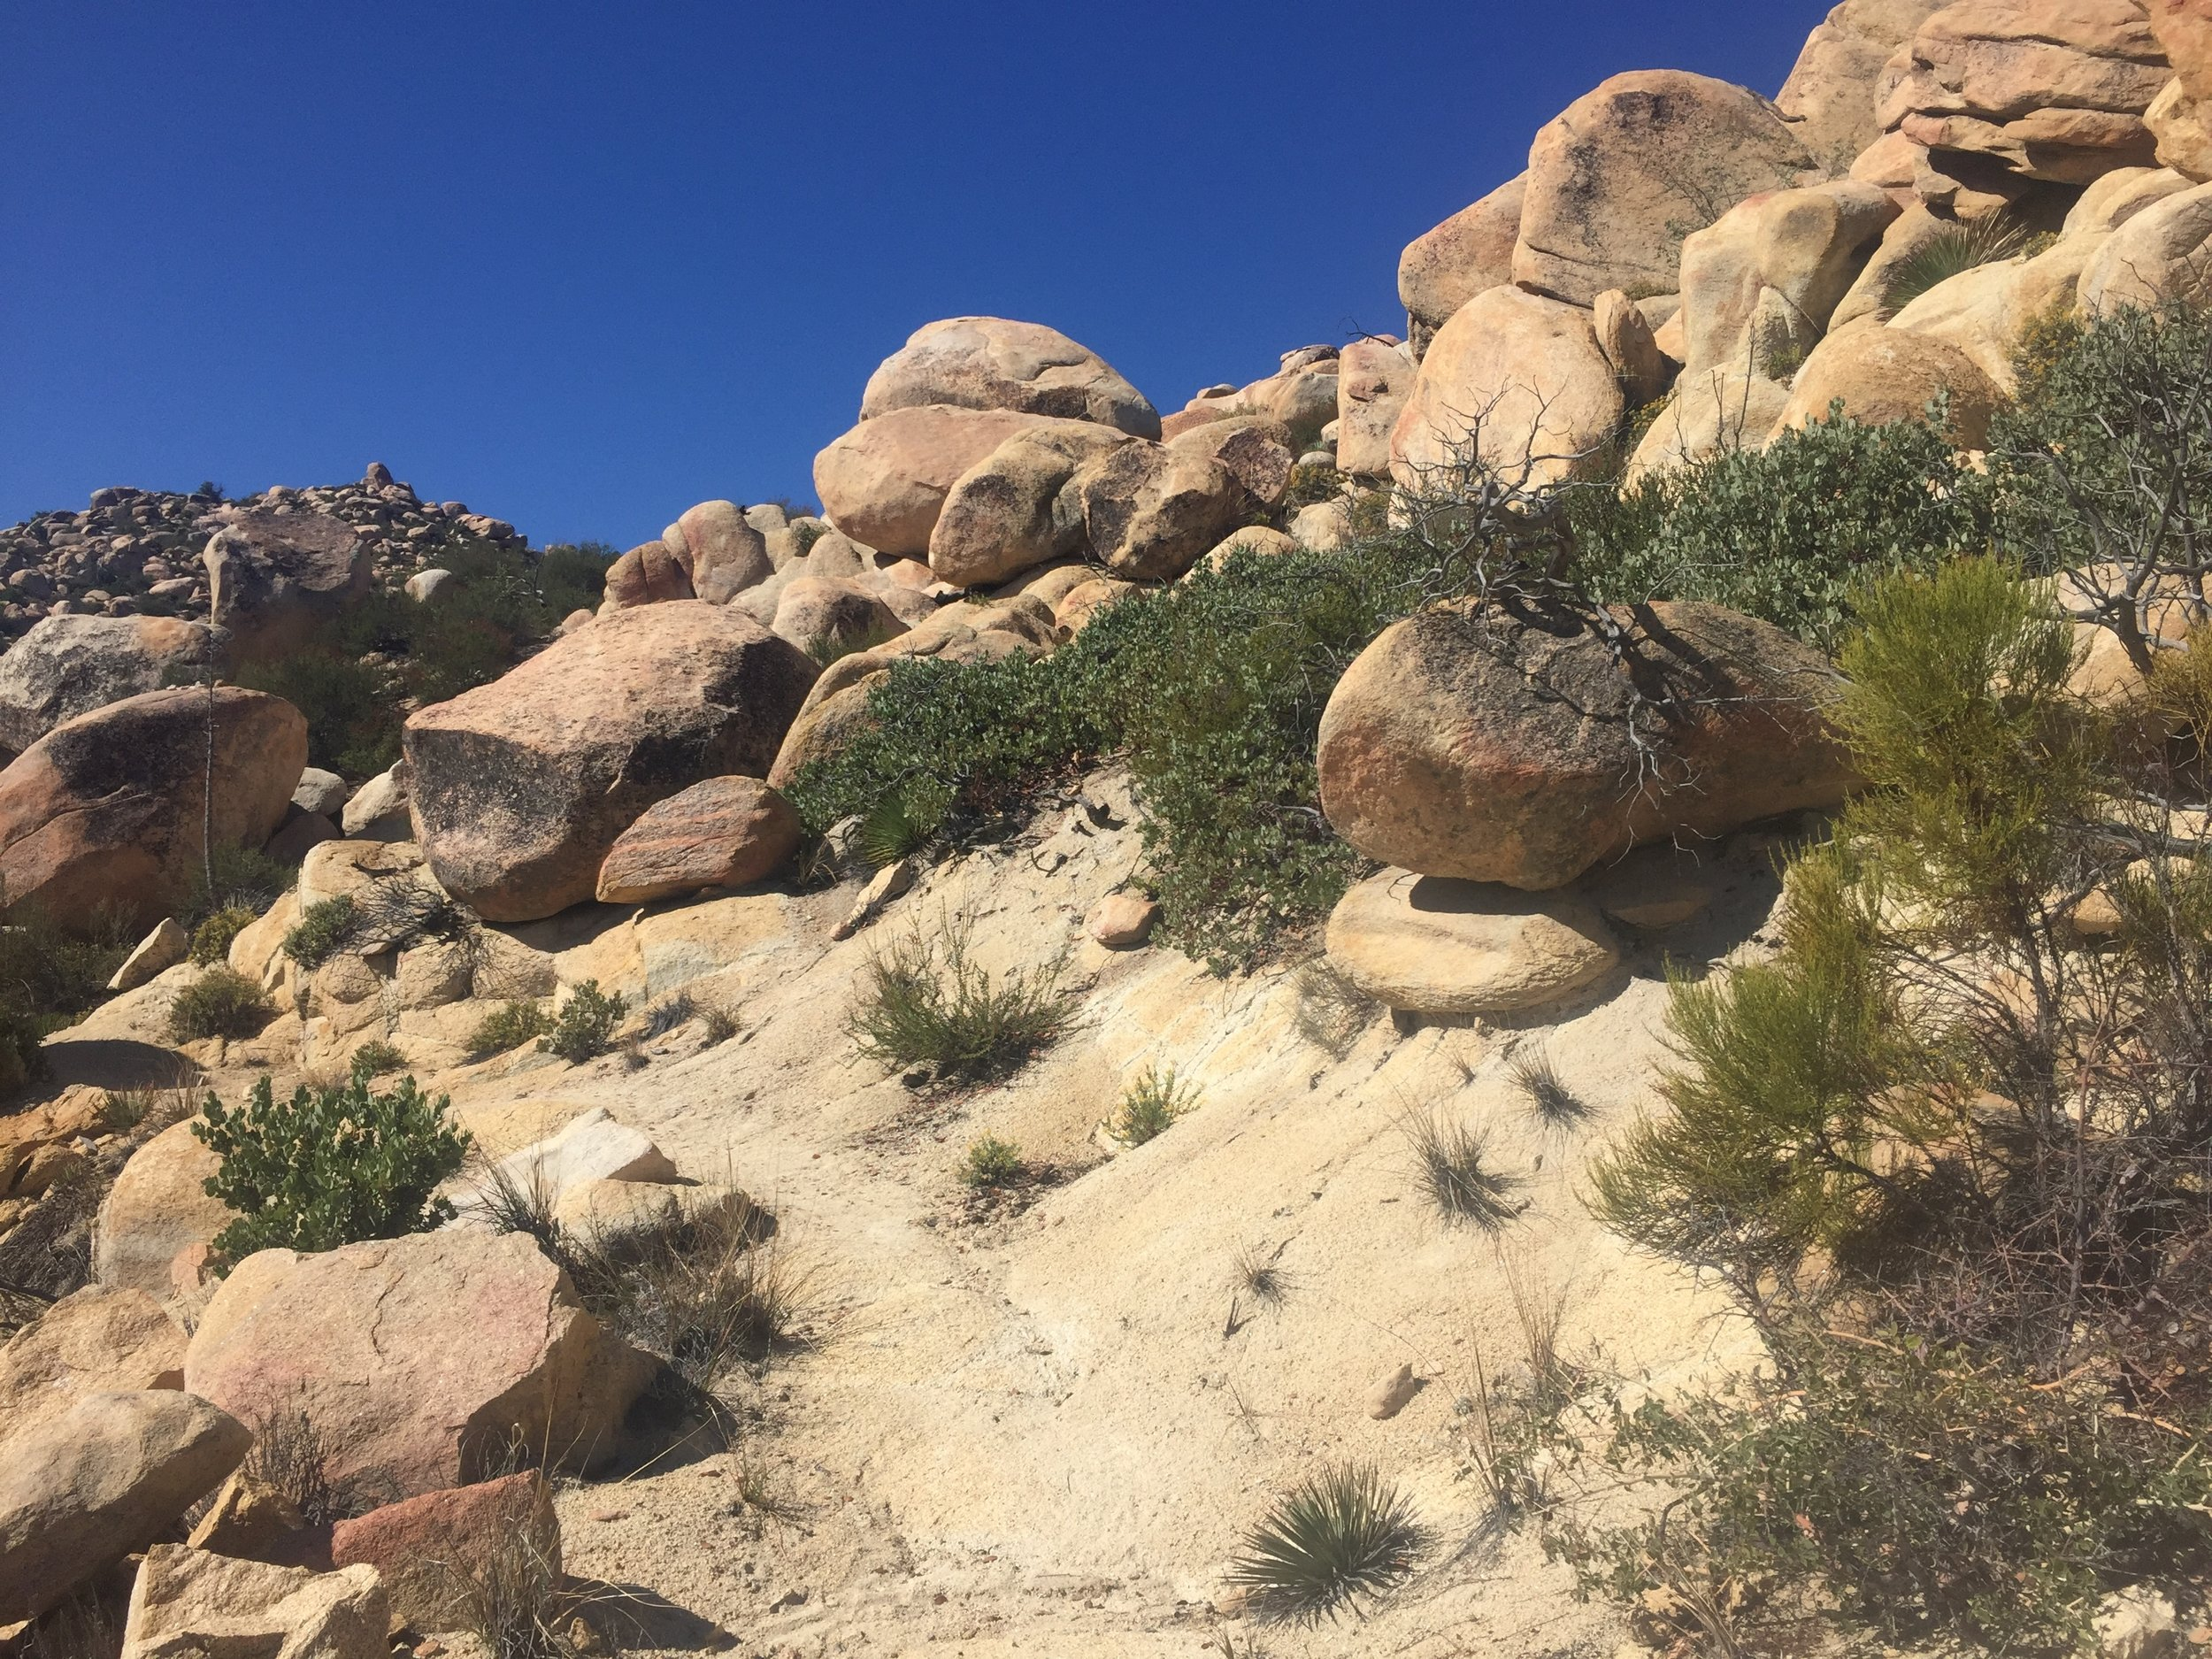 Granite boulders and deep blue sky to rival the Sierra, but plants give it away as SoCal